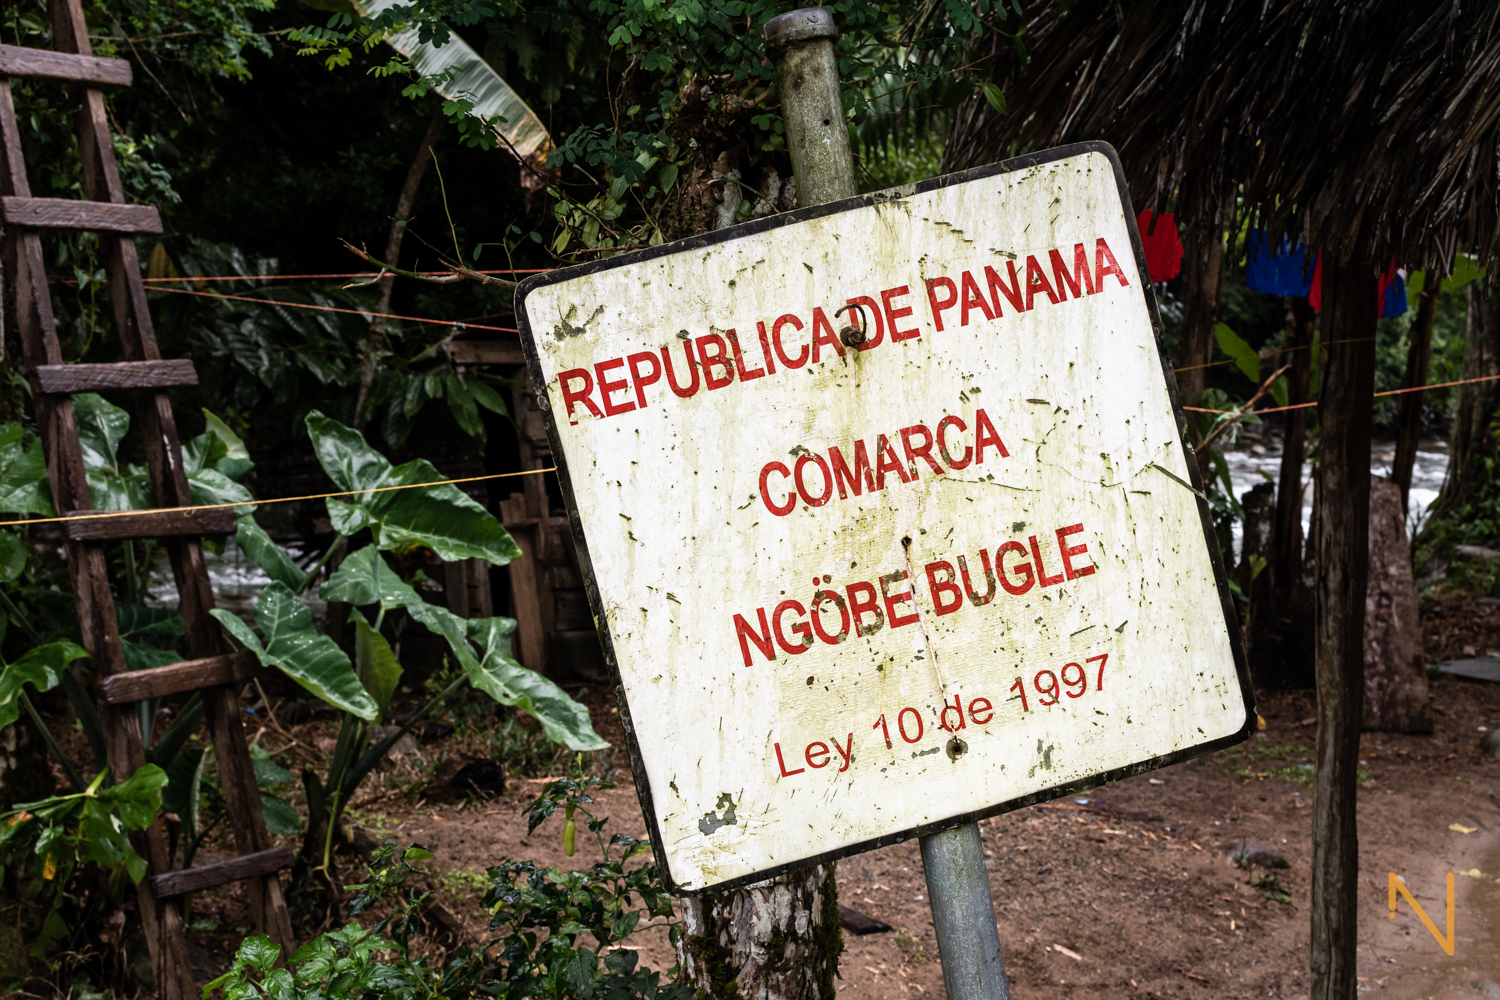 The delimitation of the comarca Ngäbe-Buglè in Norteño, Bocas del Toro.